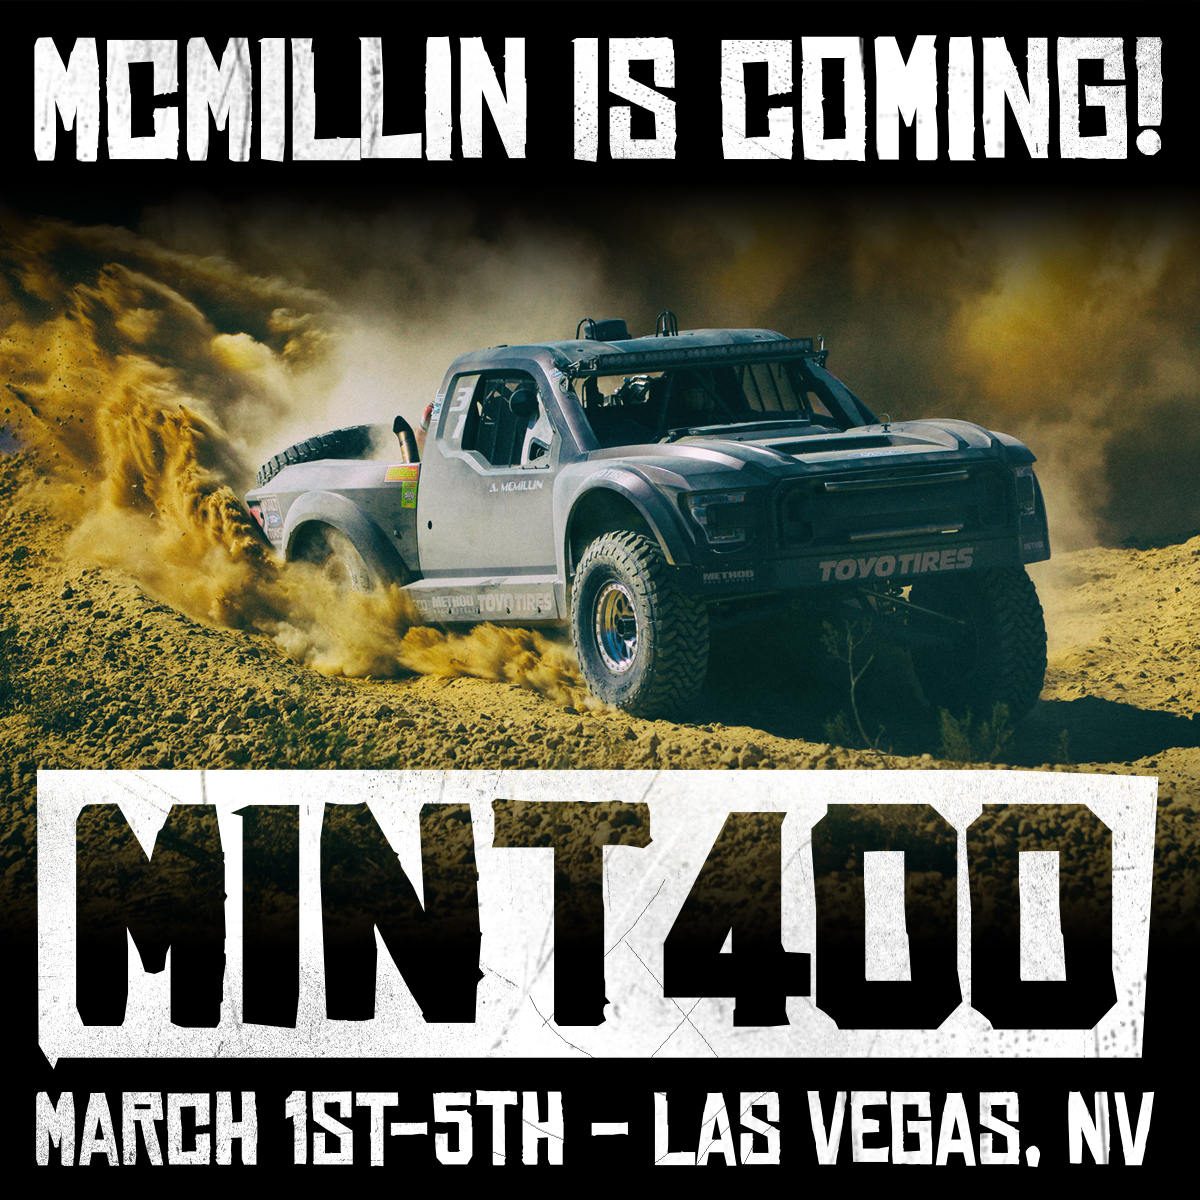 2017_mint_400_mcmillin_is_coming.jpg